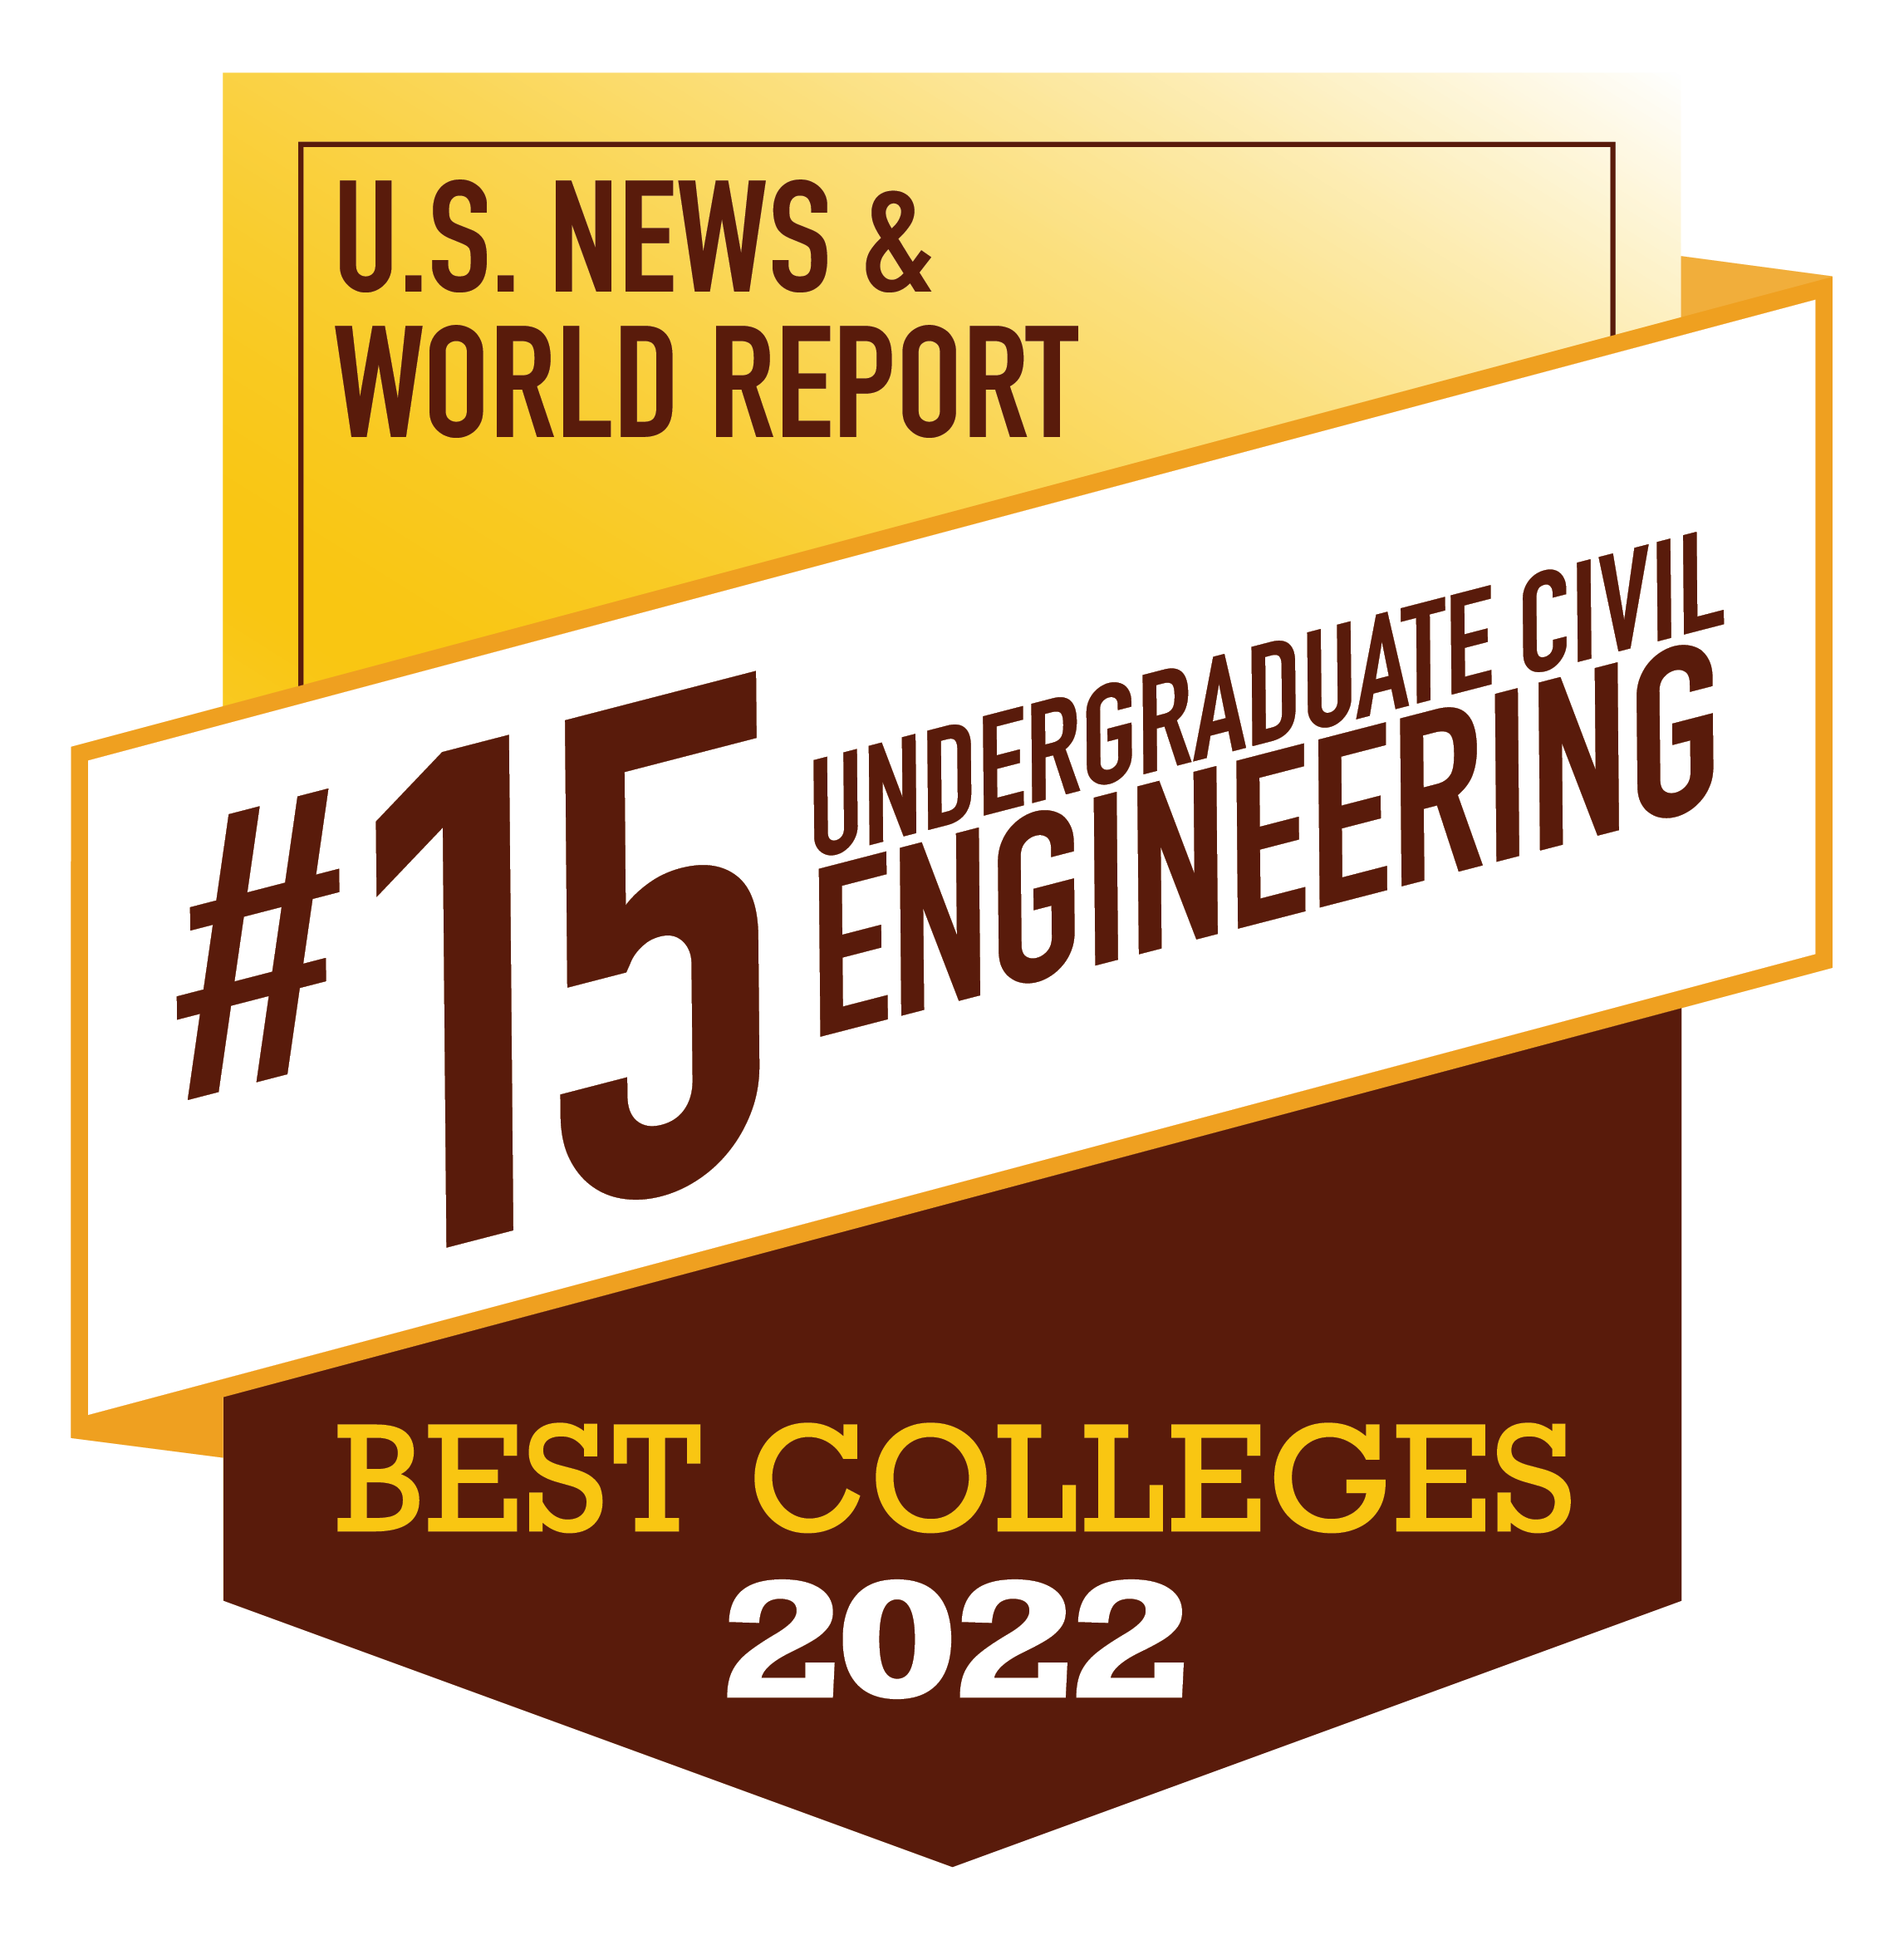 Civil engineering named 15th best by US News & World Report